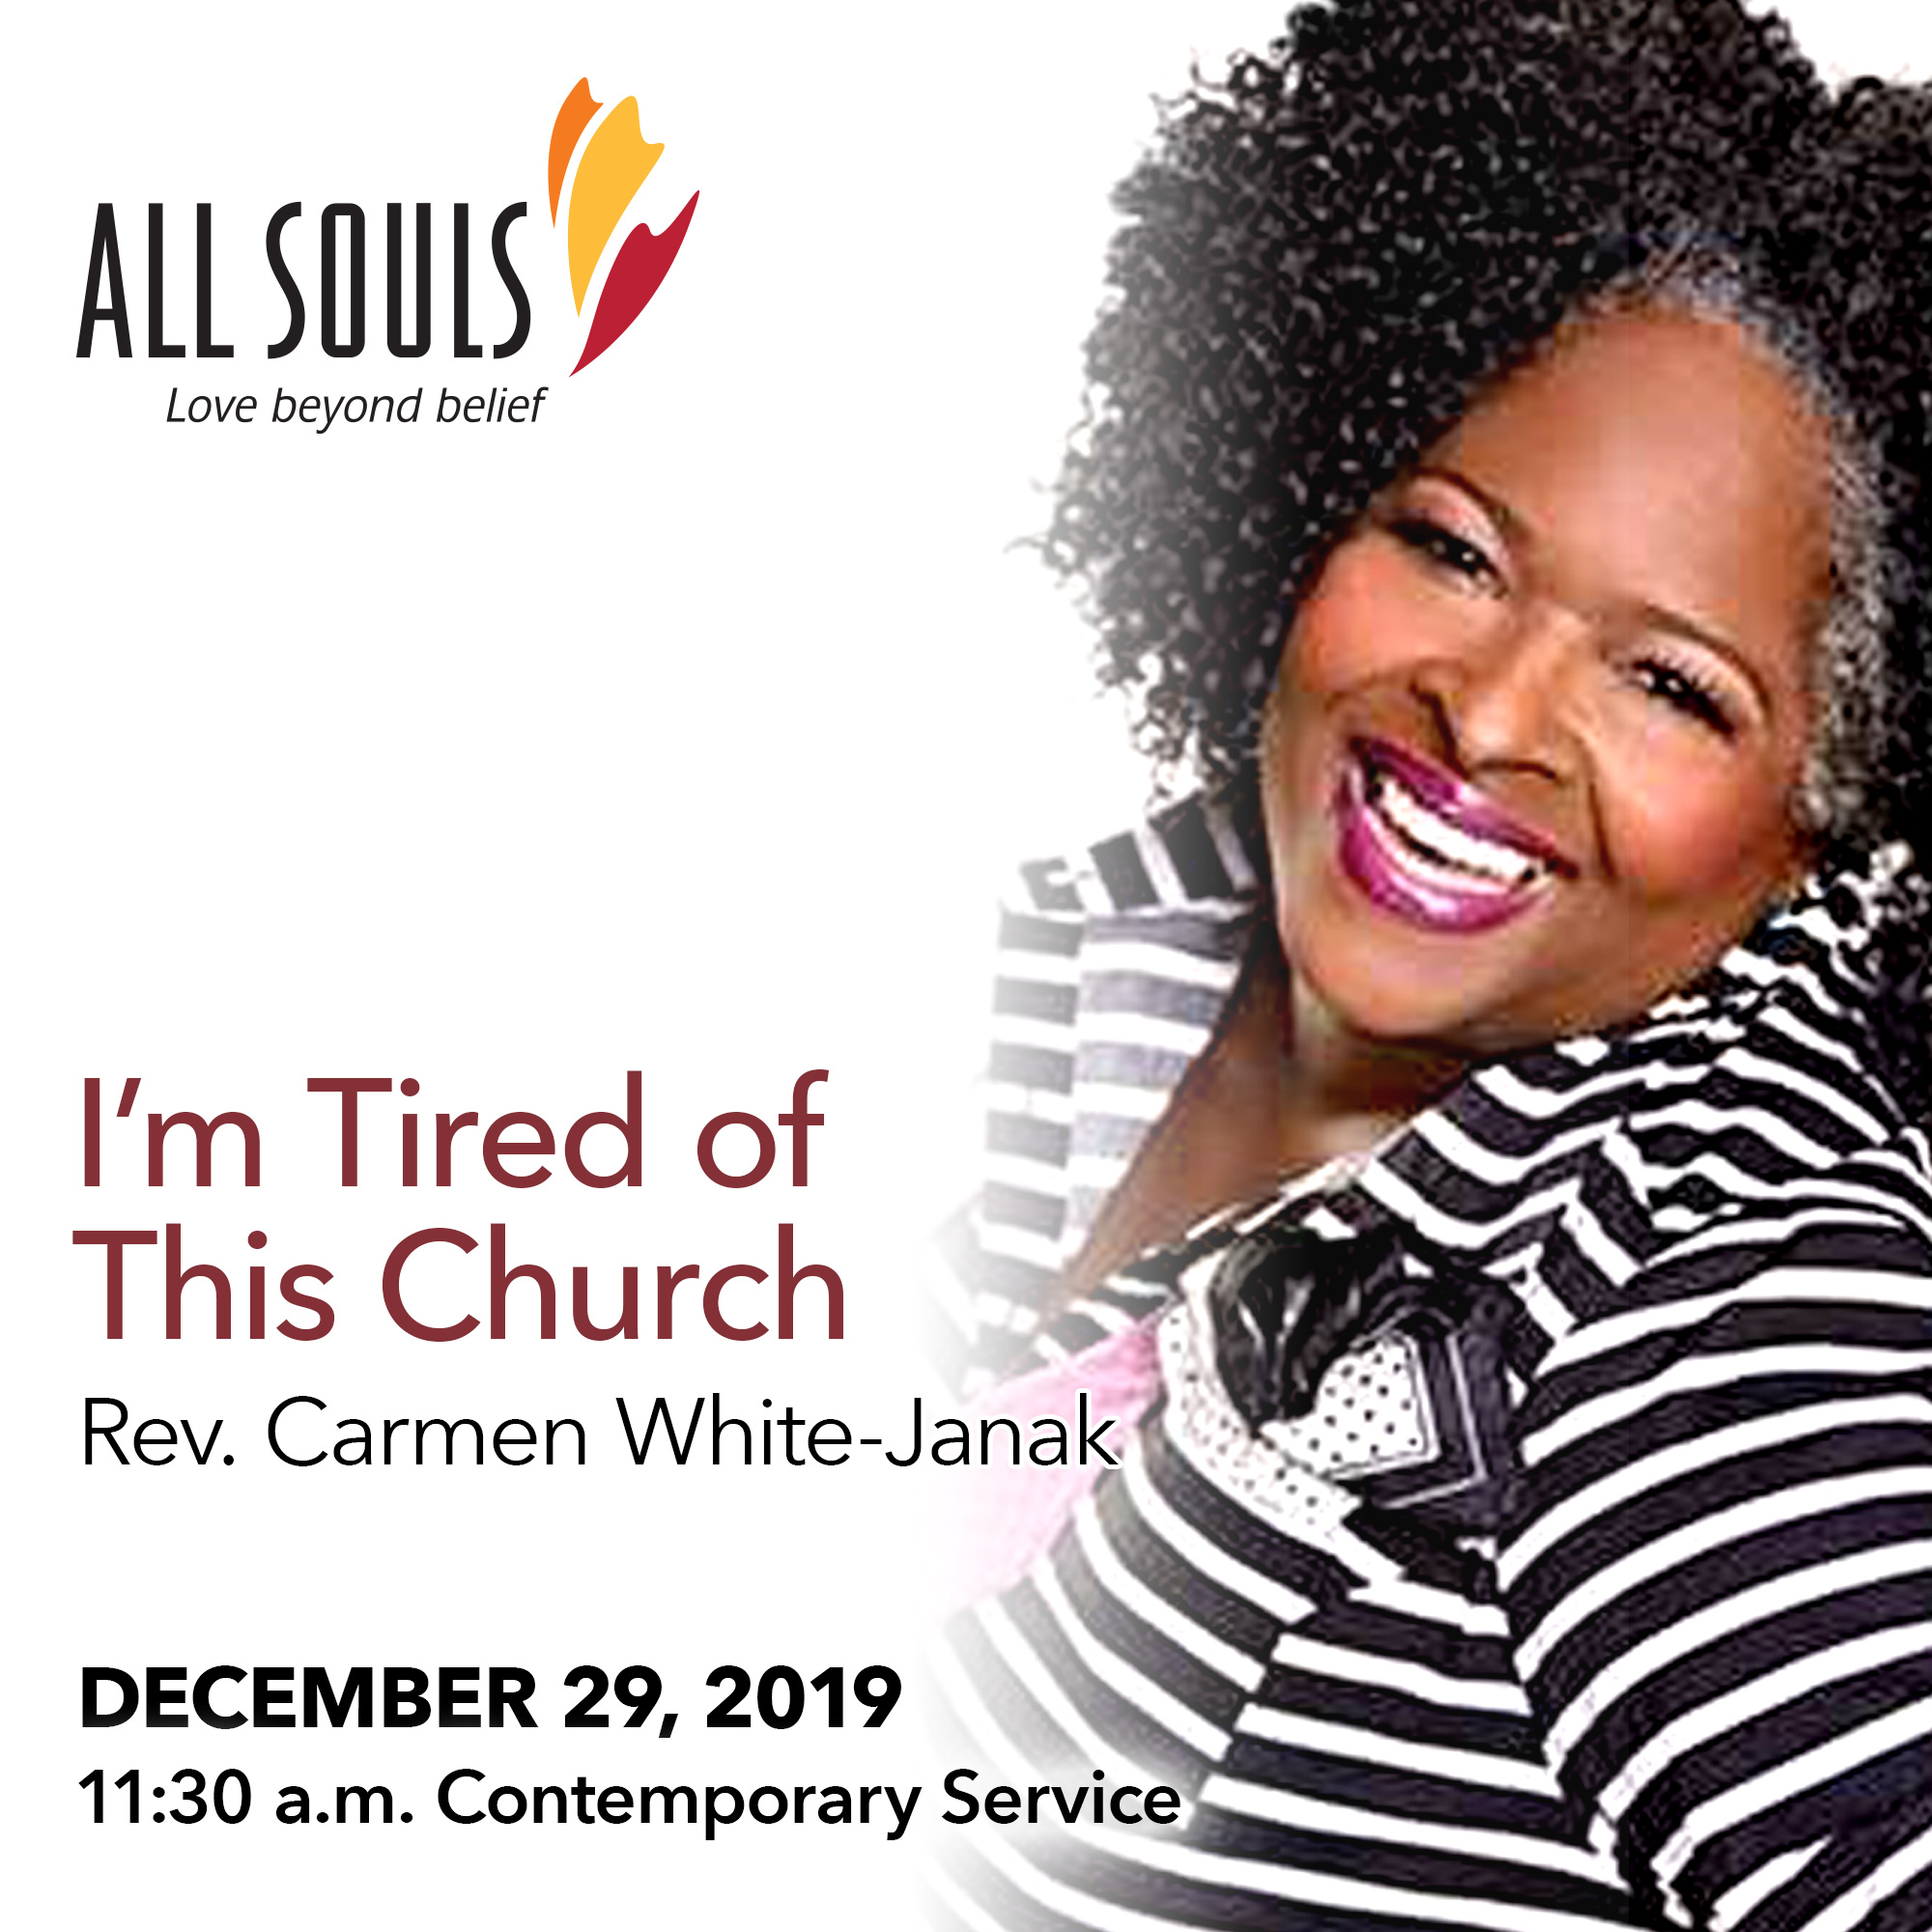 'I'M TIRED OF THIS CHURCH' - A sermon by Rev. Carmen White-Janak (Contemporary Service) show art